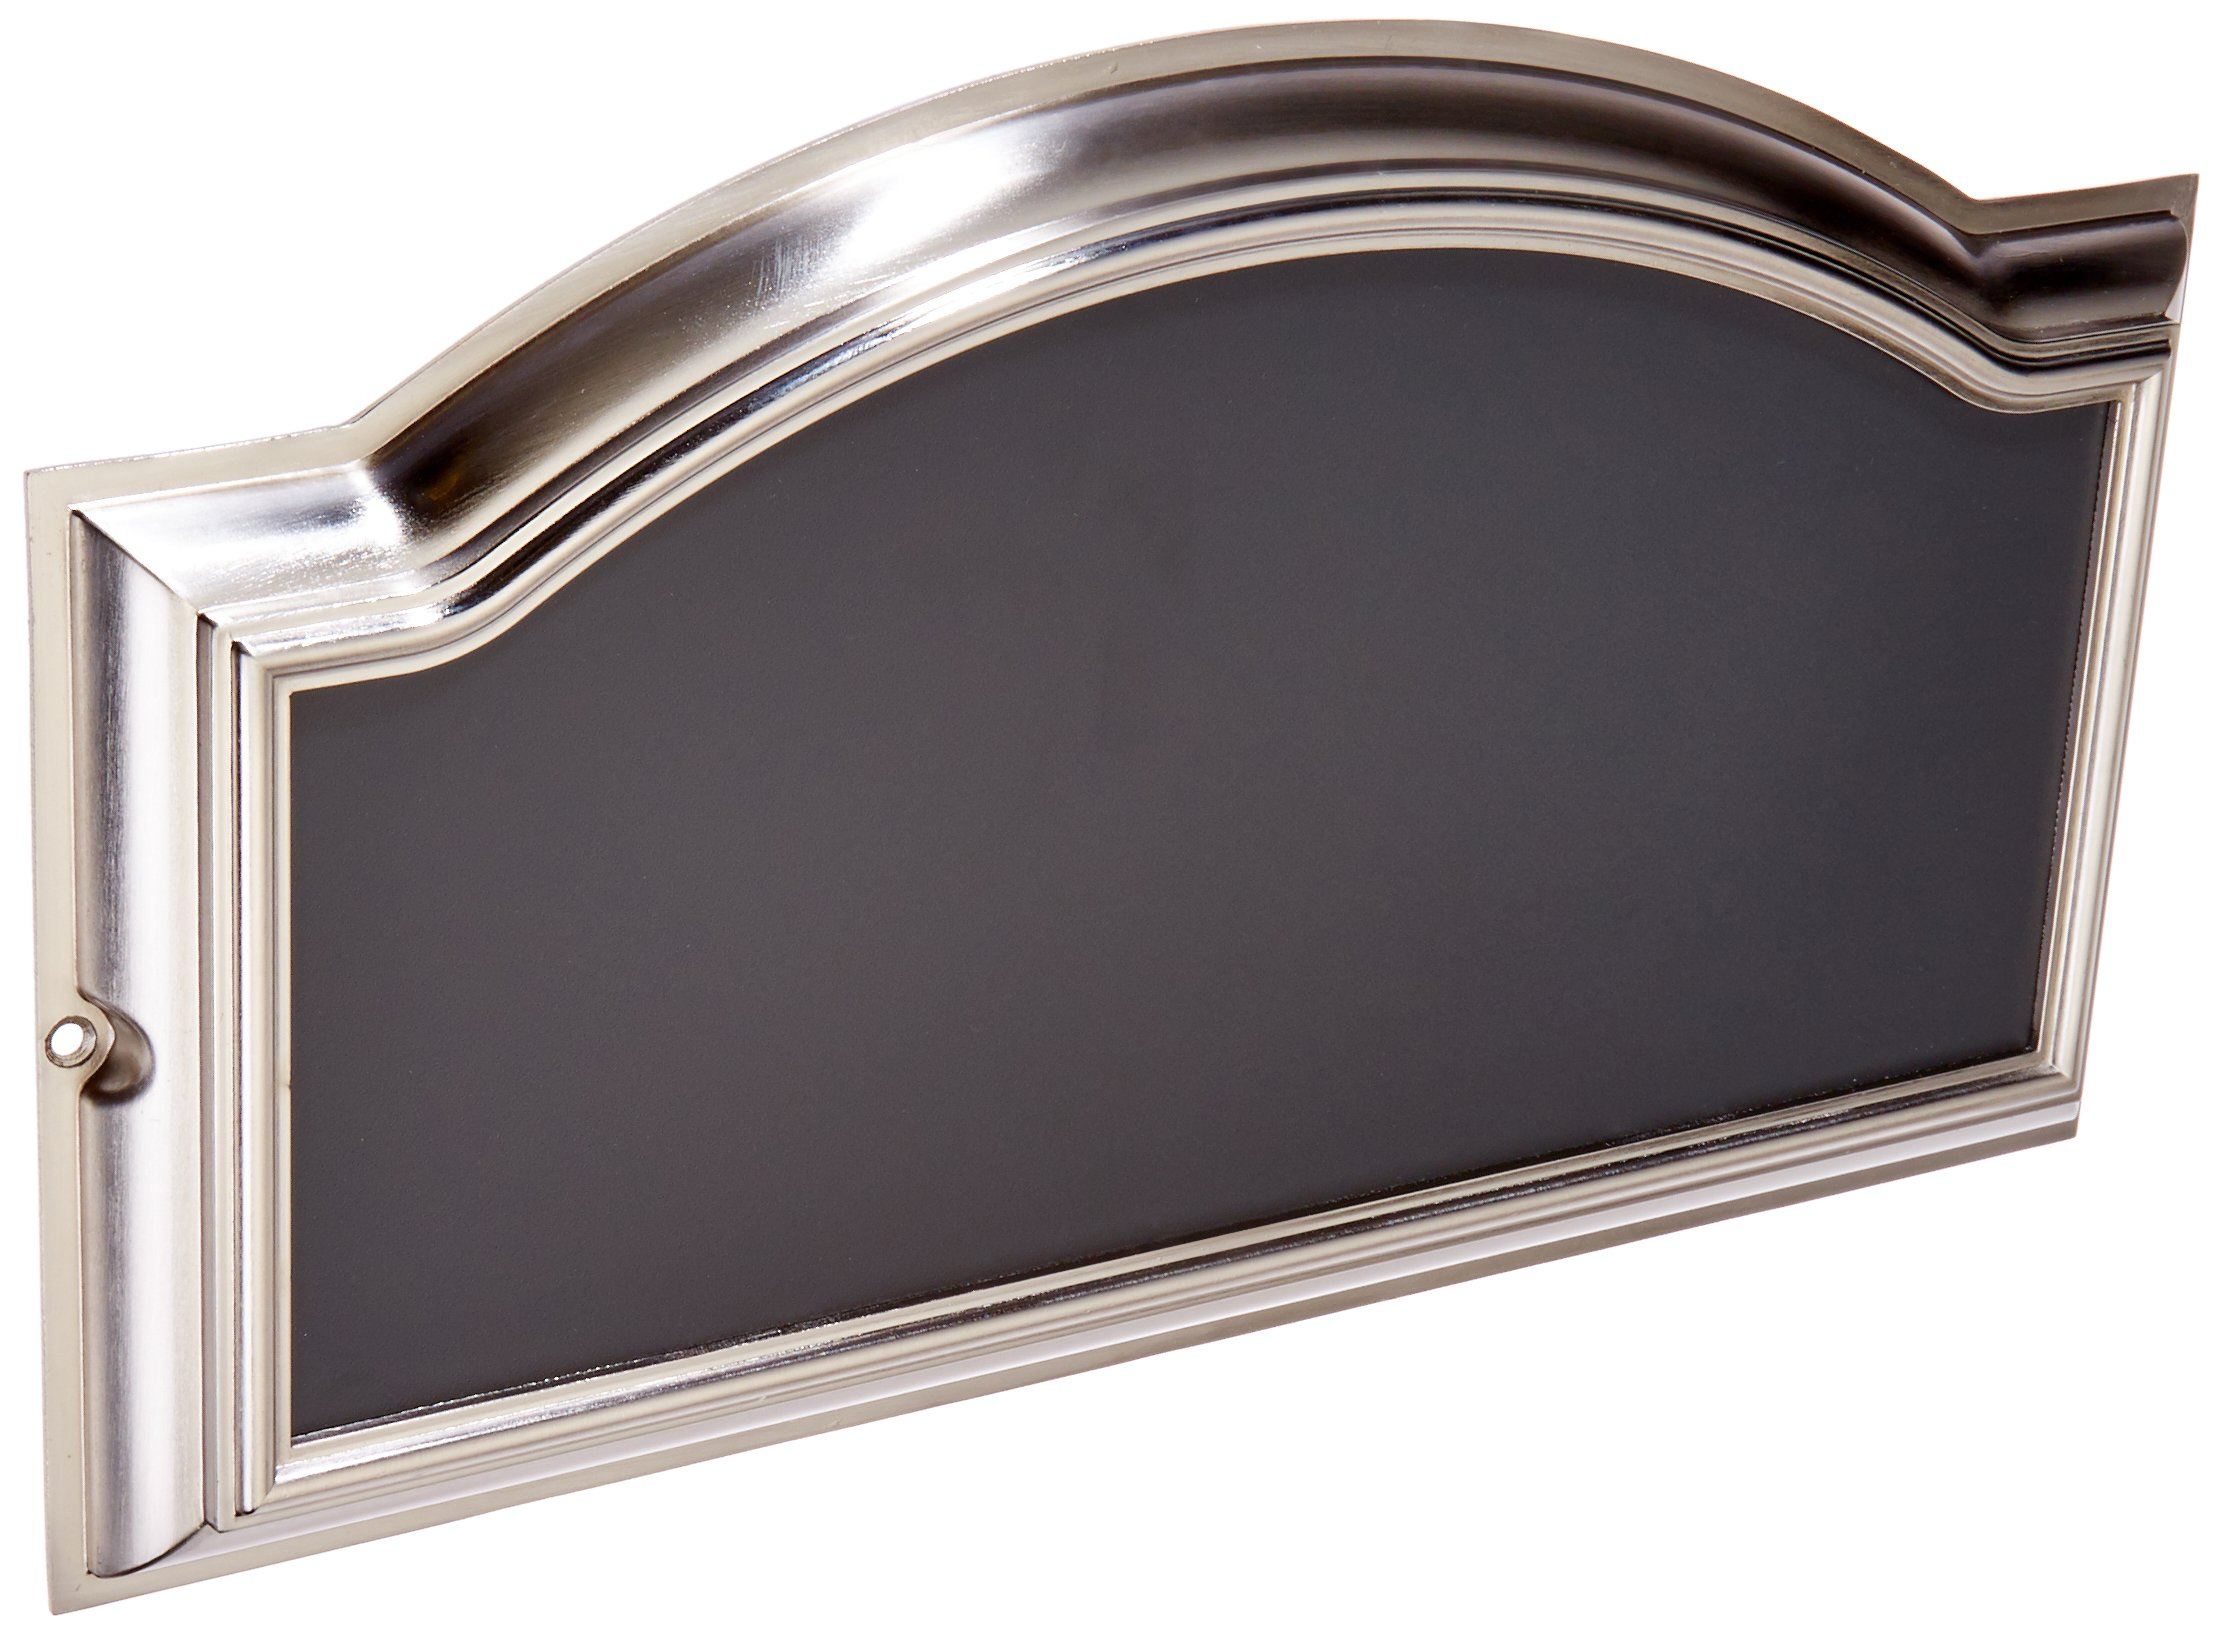 The Hillman Group 843267 Distinctions Address Plaque, Brushed Nickel Number